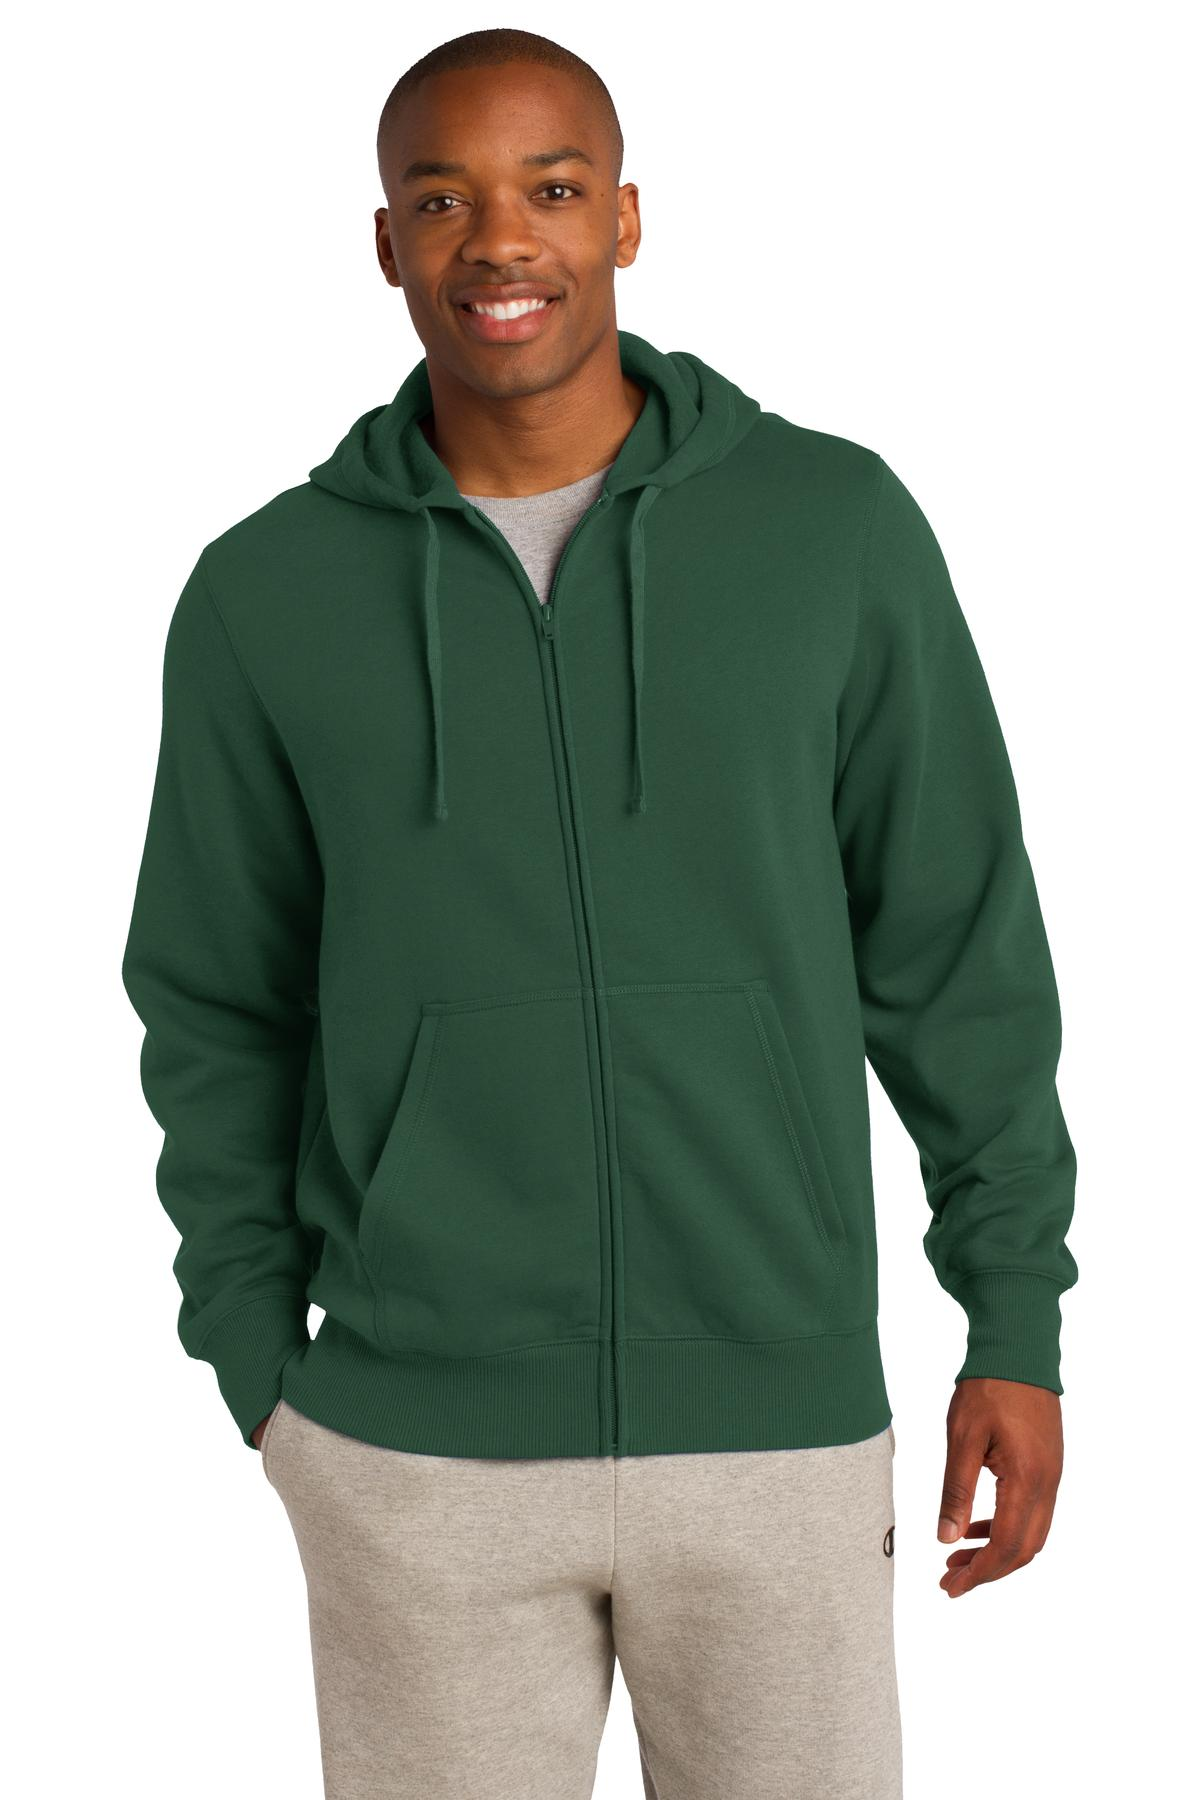 Sweatshirts-Fleece-Hooded-60